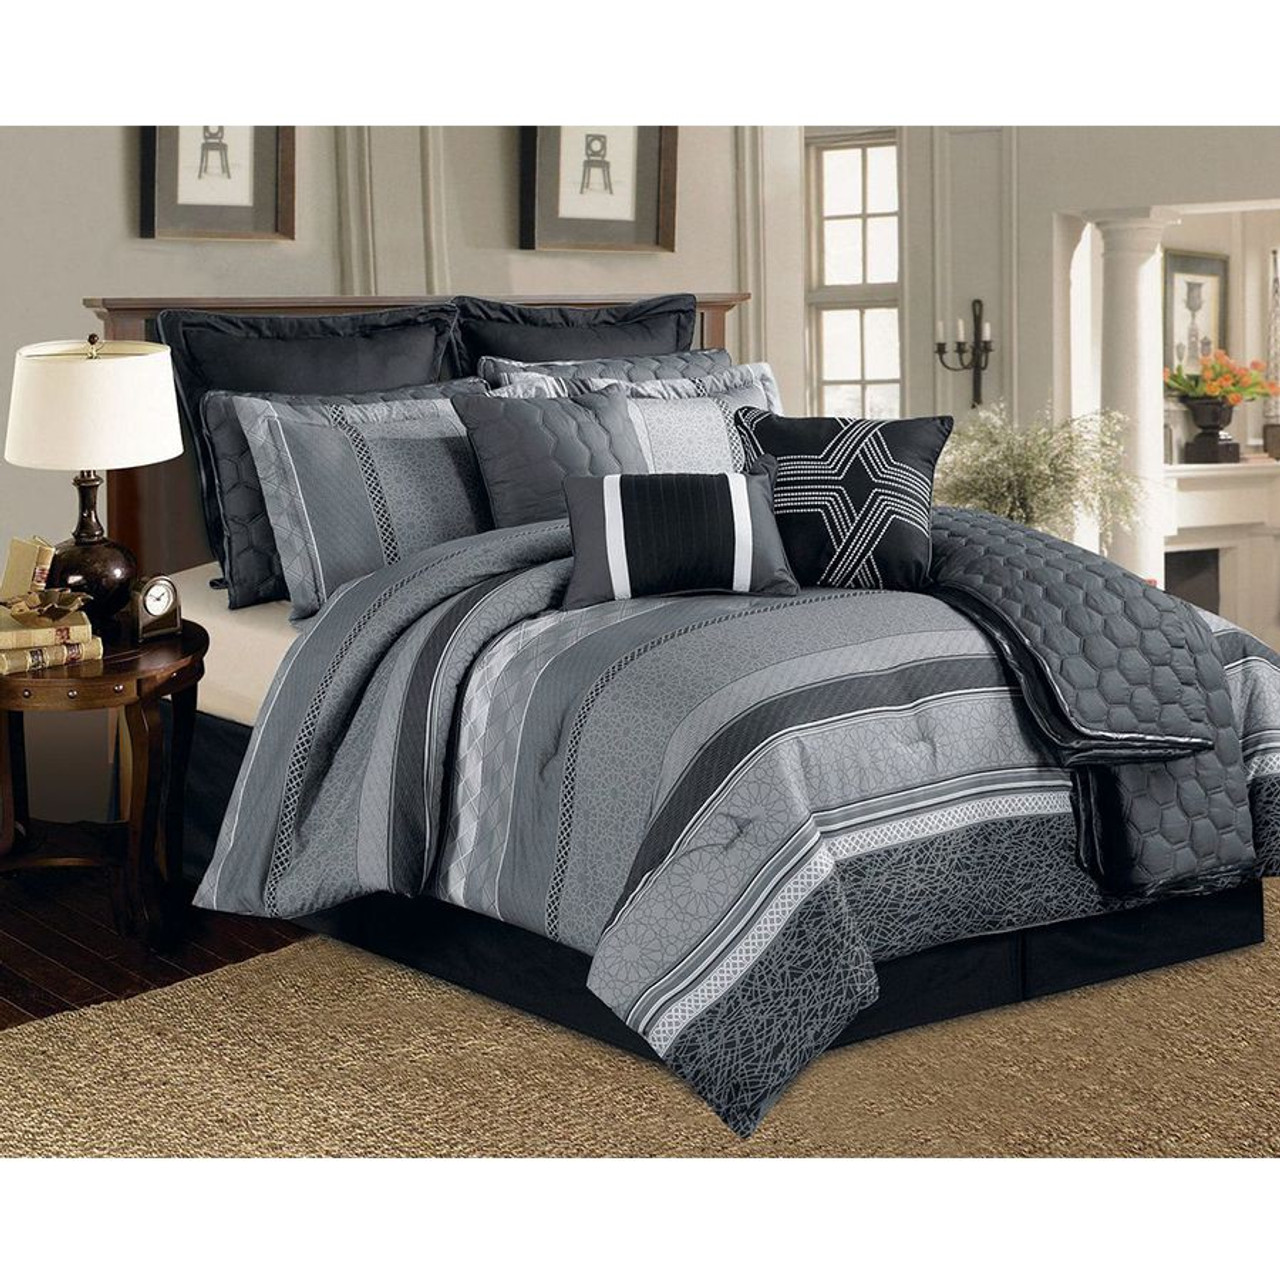 12 Pc. Black, Grey and White Striped Pattern Comforter Set with Quilt Included